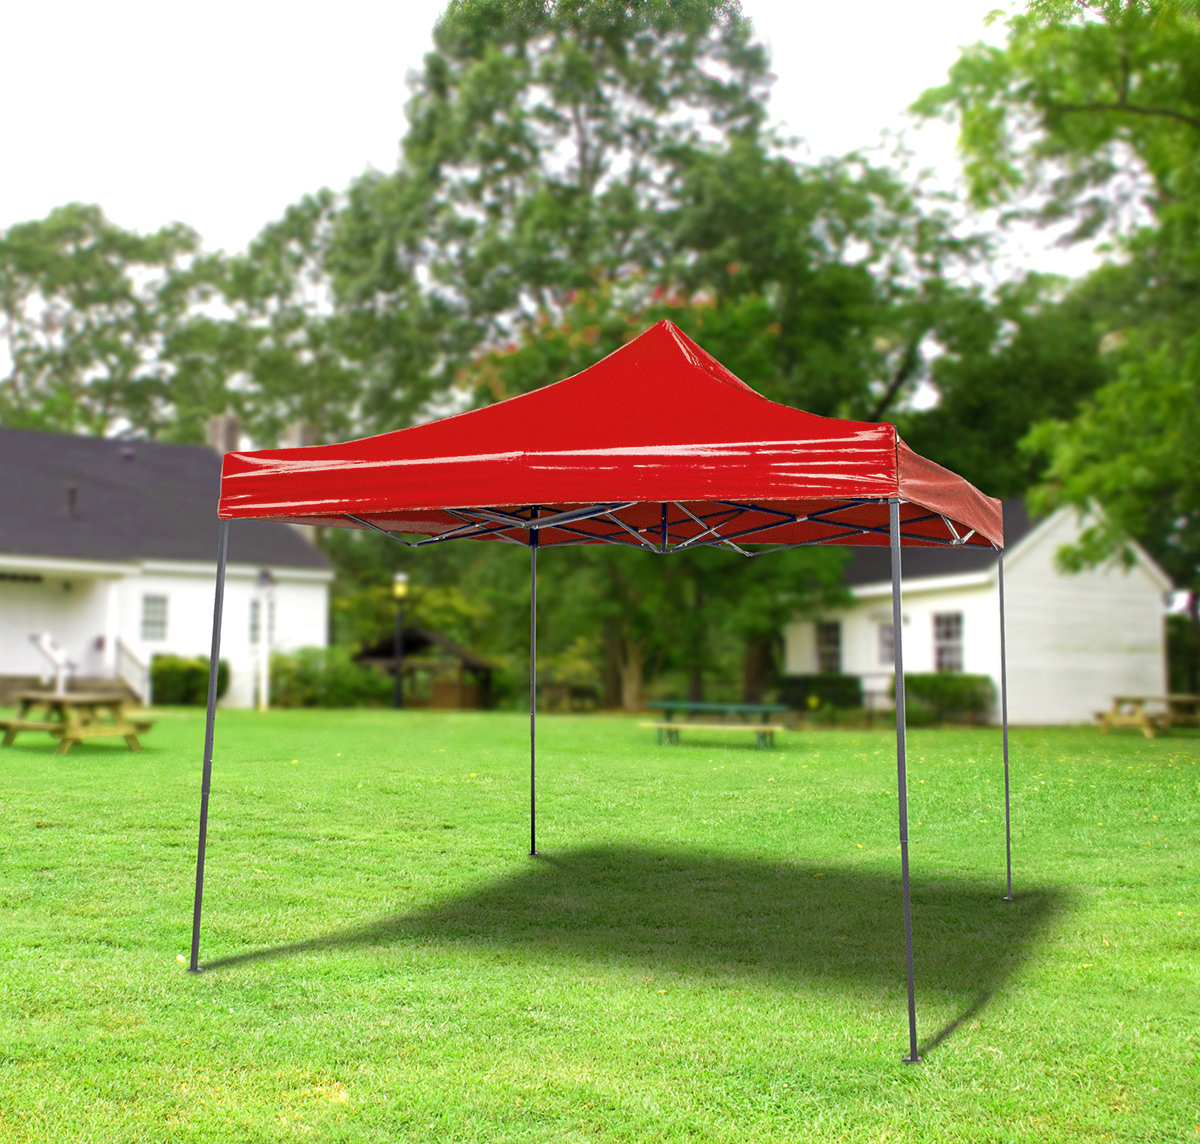 10 x 10 Pop Up Gazebo Canopy Red